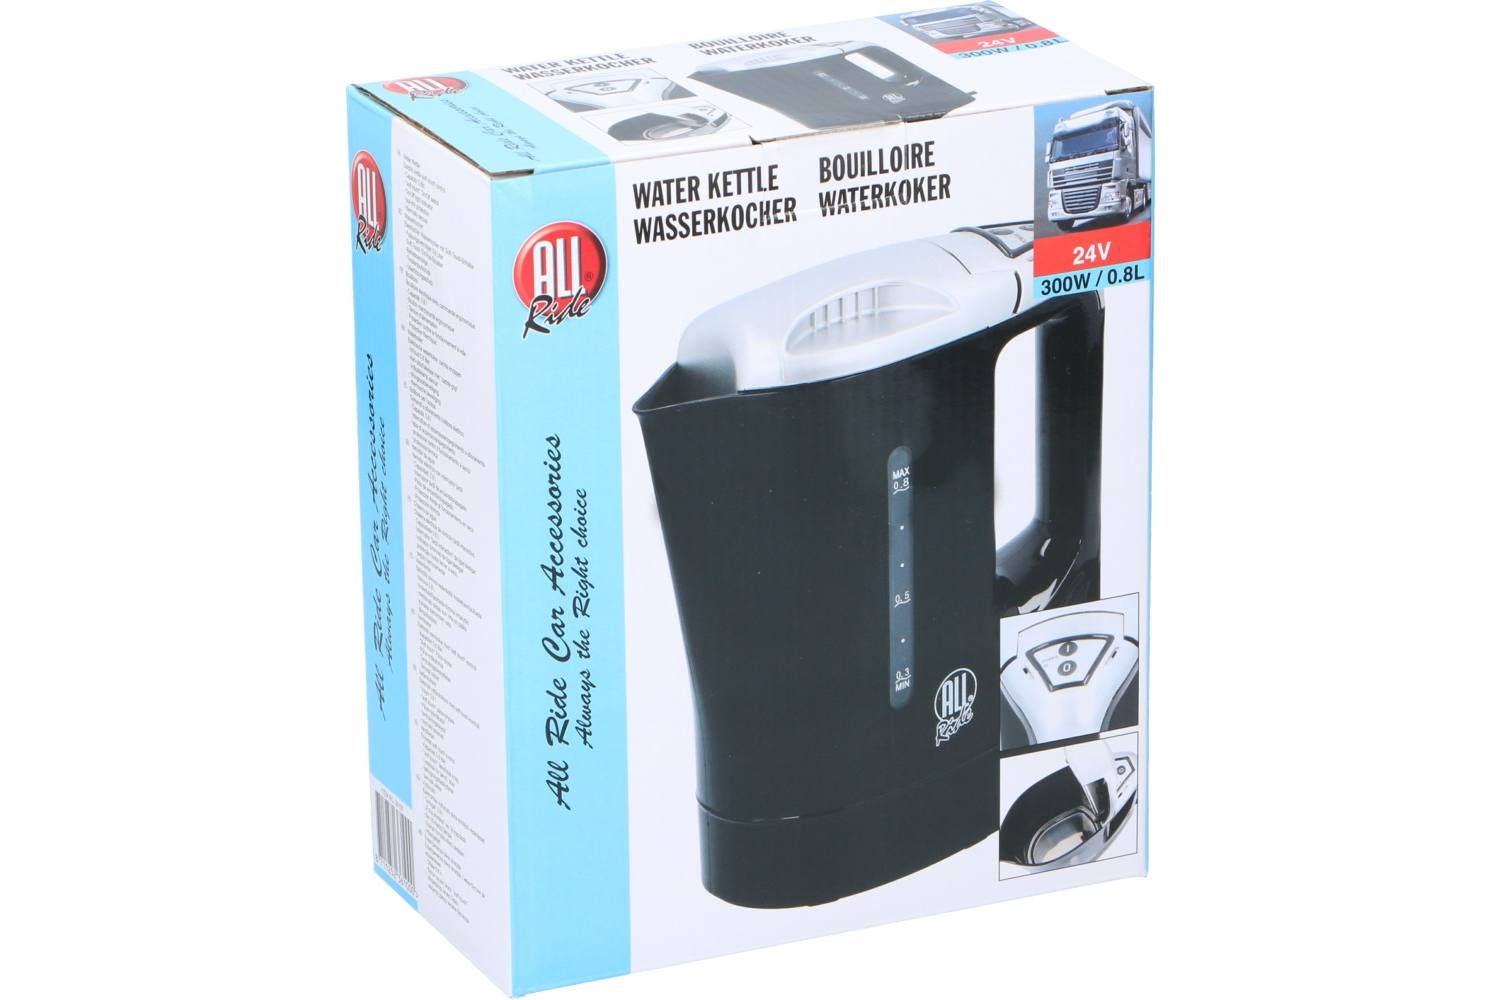 Water kettle, AllRide, 24V, 300W, 800ml 1